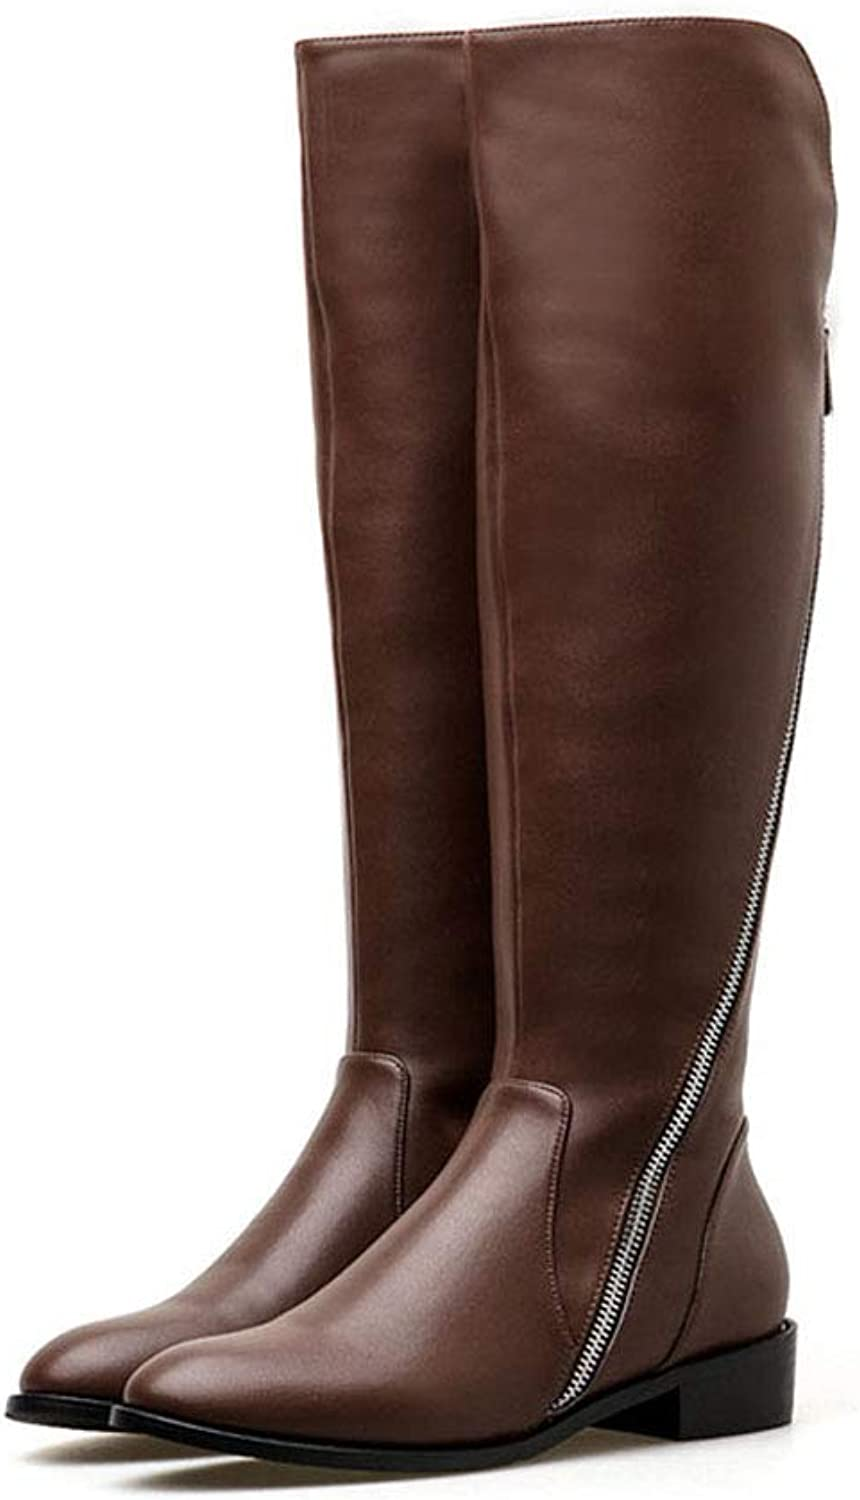 Women's Long Boots Fall Winter Knee Knight Boots Ladies Zipper High Boots Leather Mid-Calf Thick Heel Women's Biker Boots (color   Brown, Size   36)